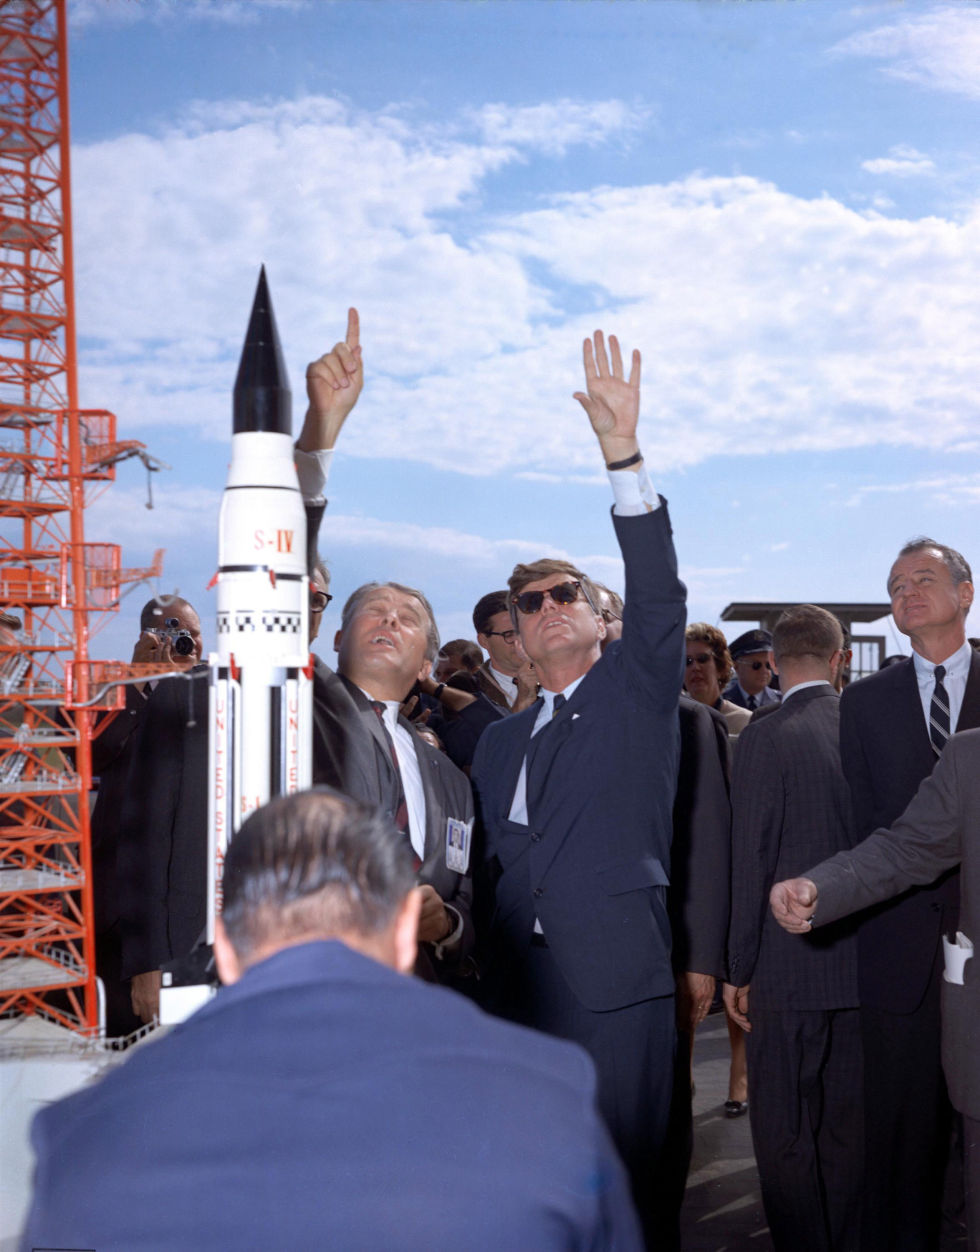 Kennedy's vision for NASA inspired greatness, then ...